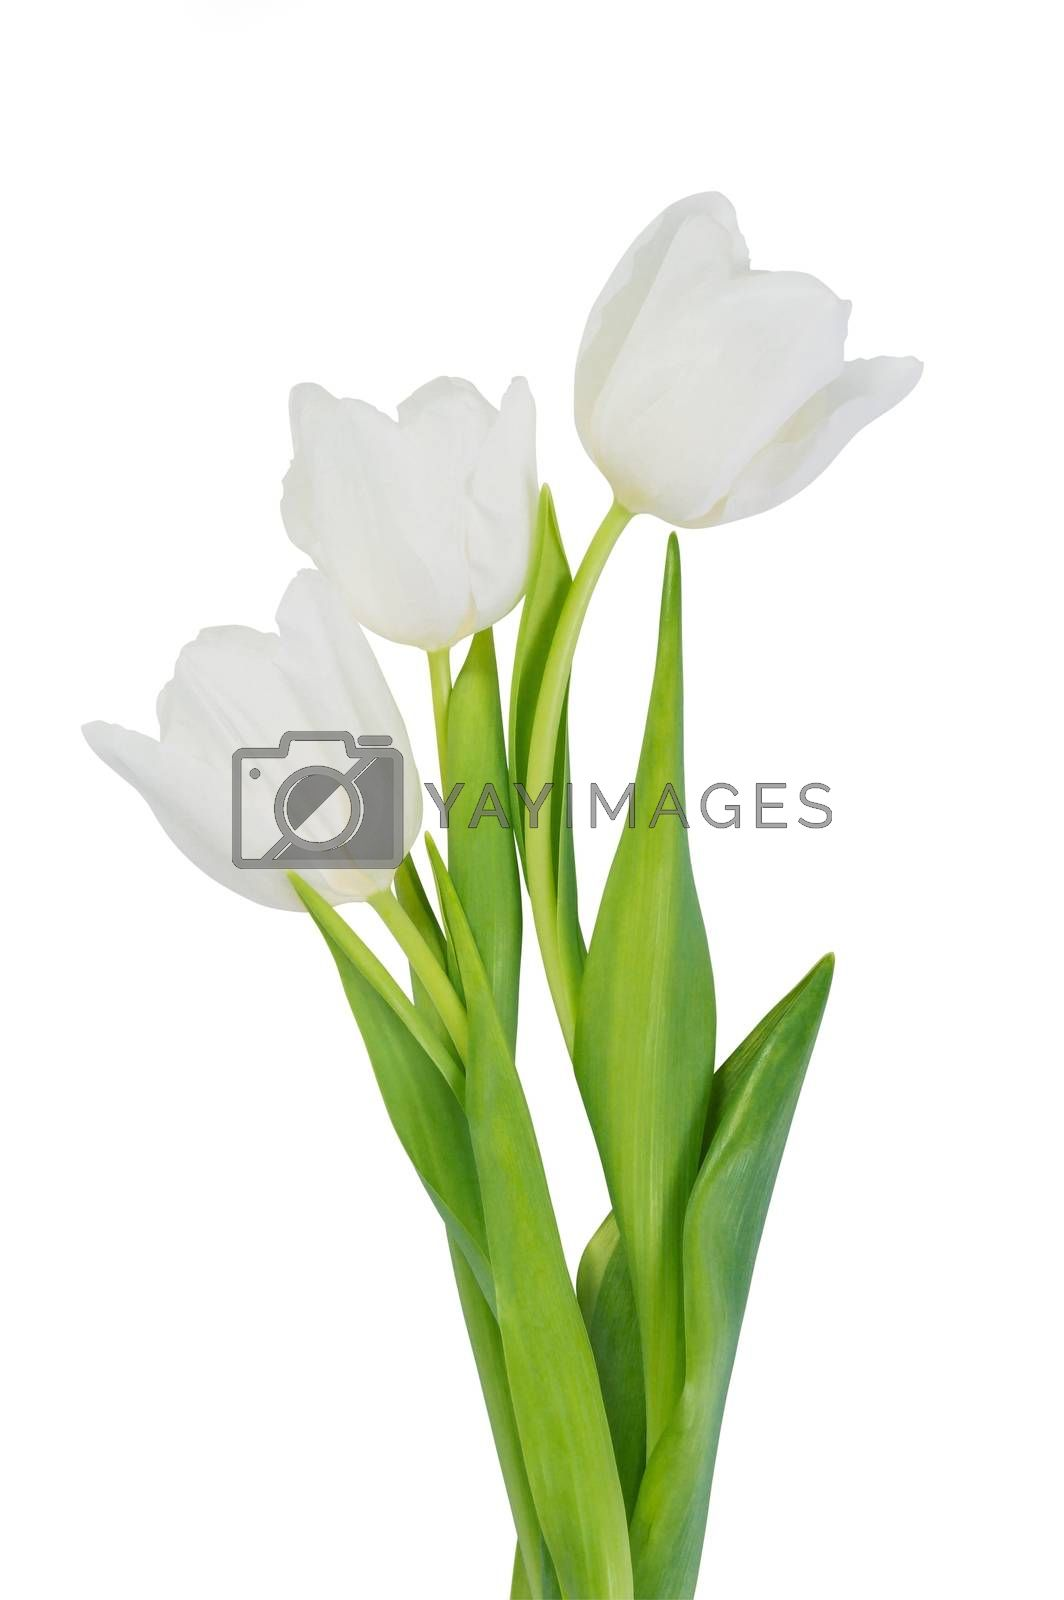 White tulip flowers isolated, clipping path